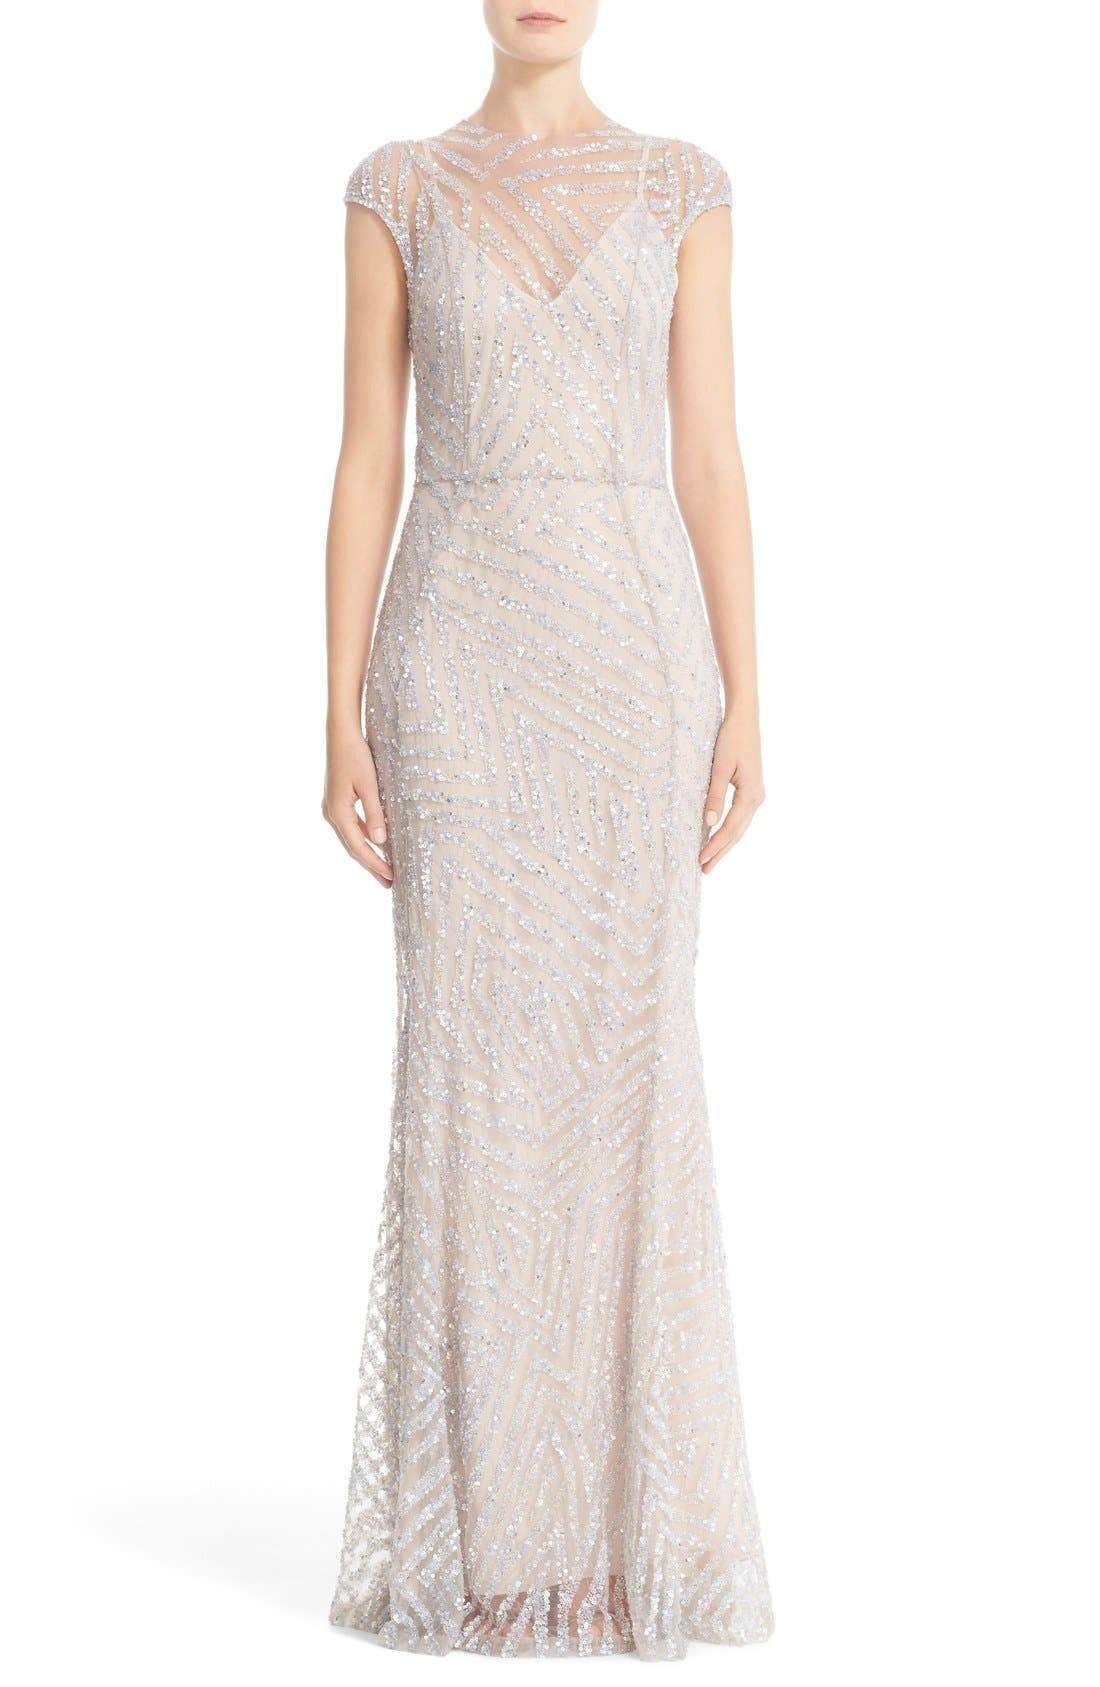 Hand Embellished Cap Sleeve Mermaid Gown,                             Main thumbnail 1, color,                             Silver